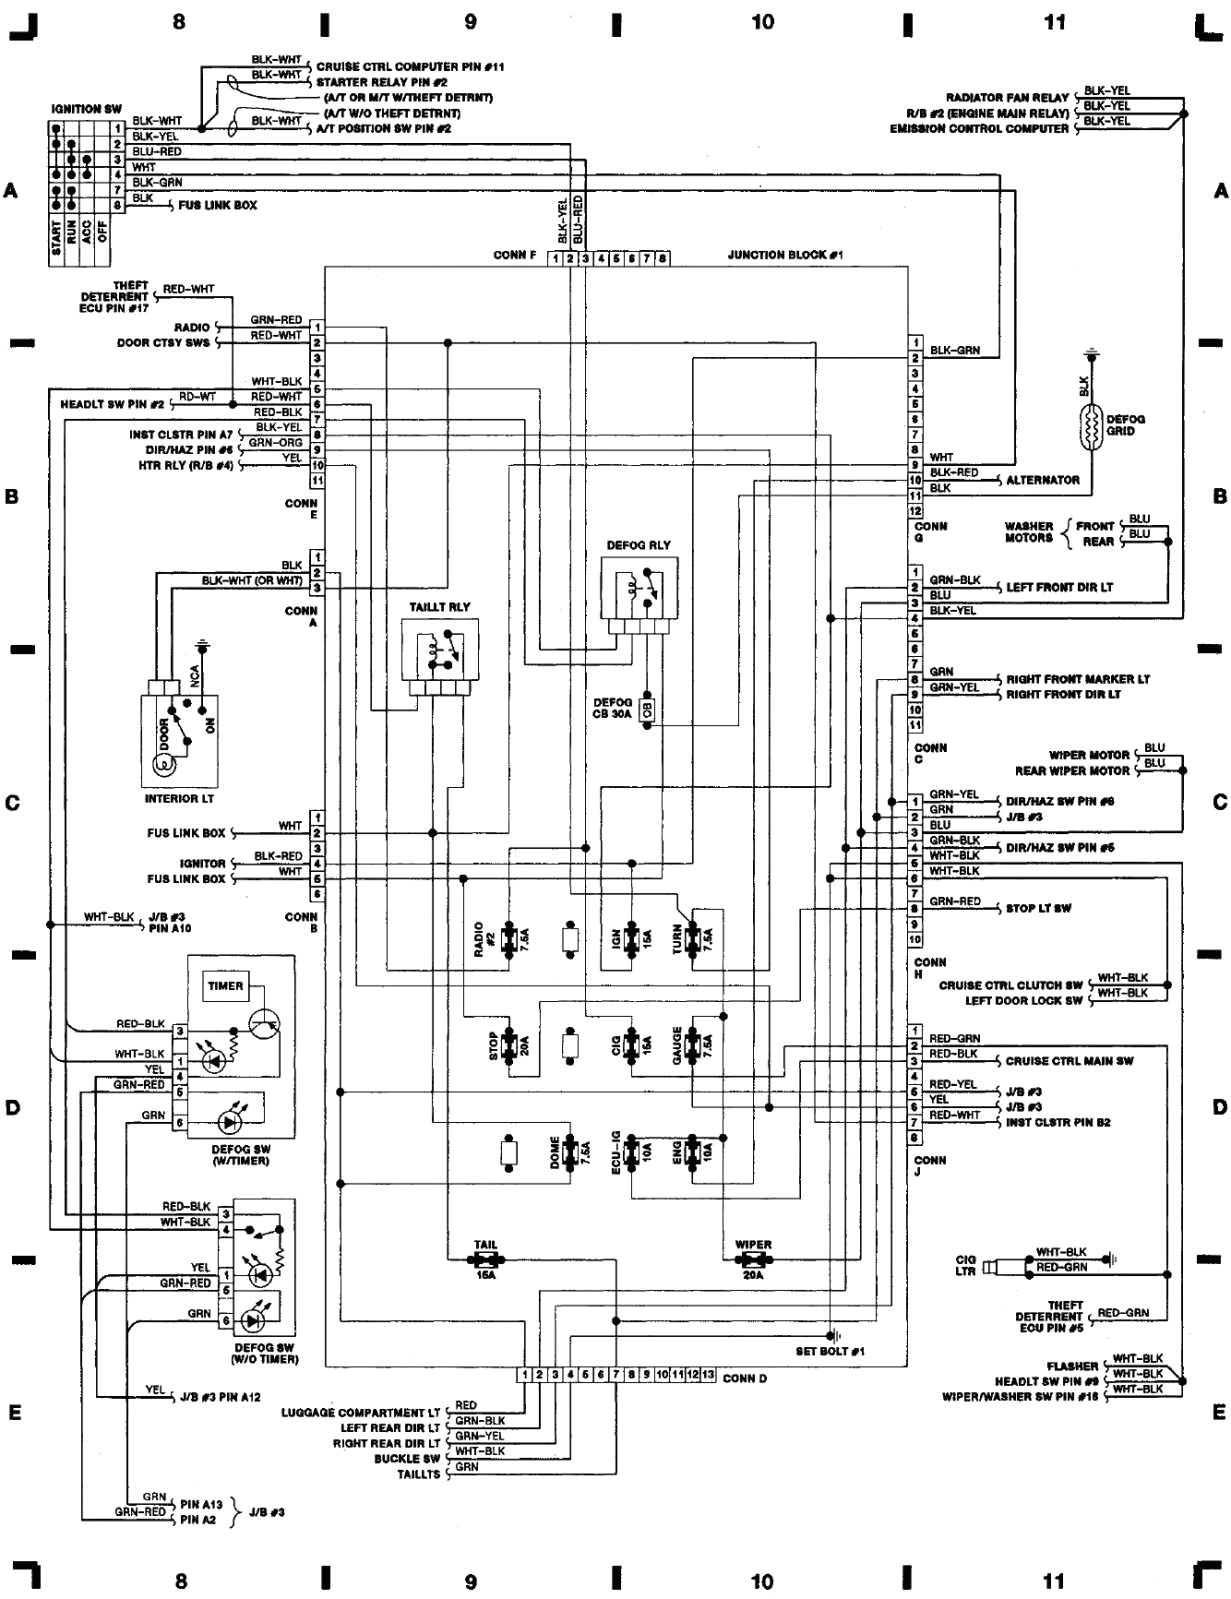 beautiful toyota sienna wiring diagram for your water well